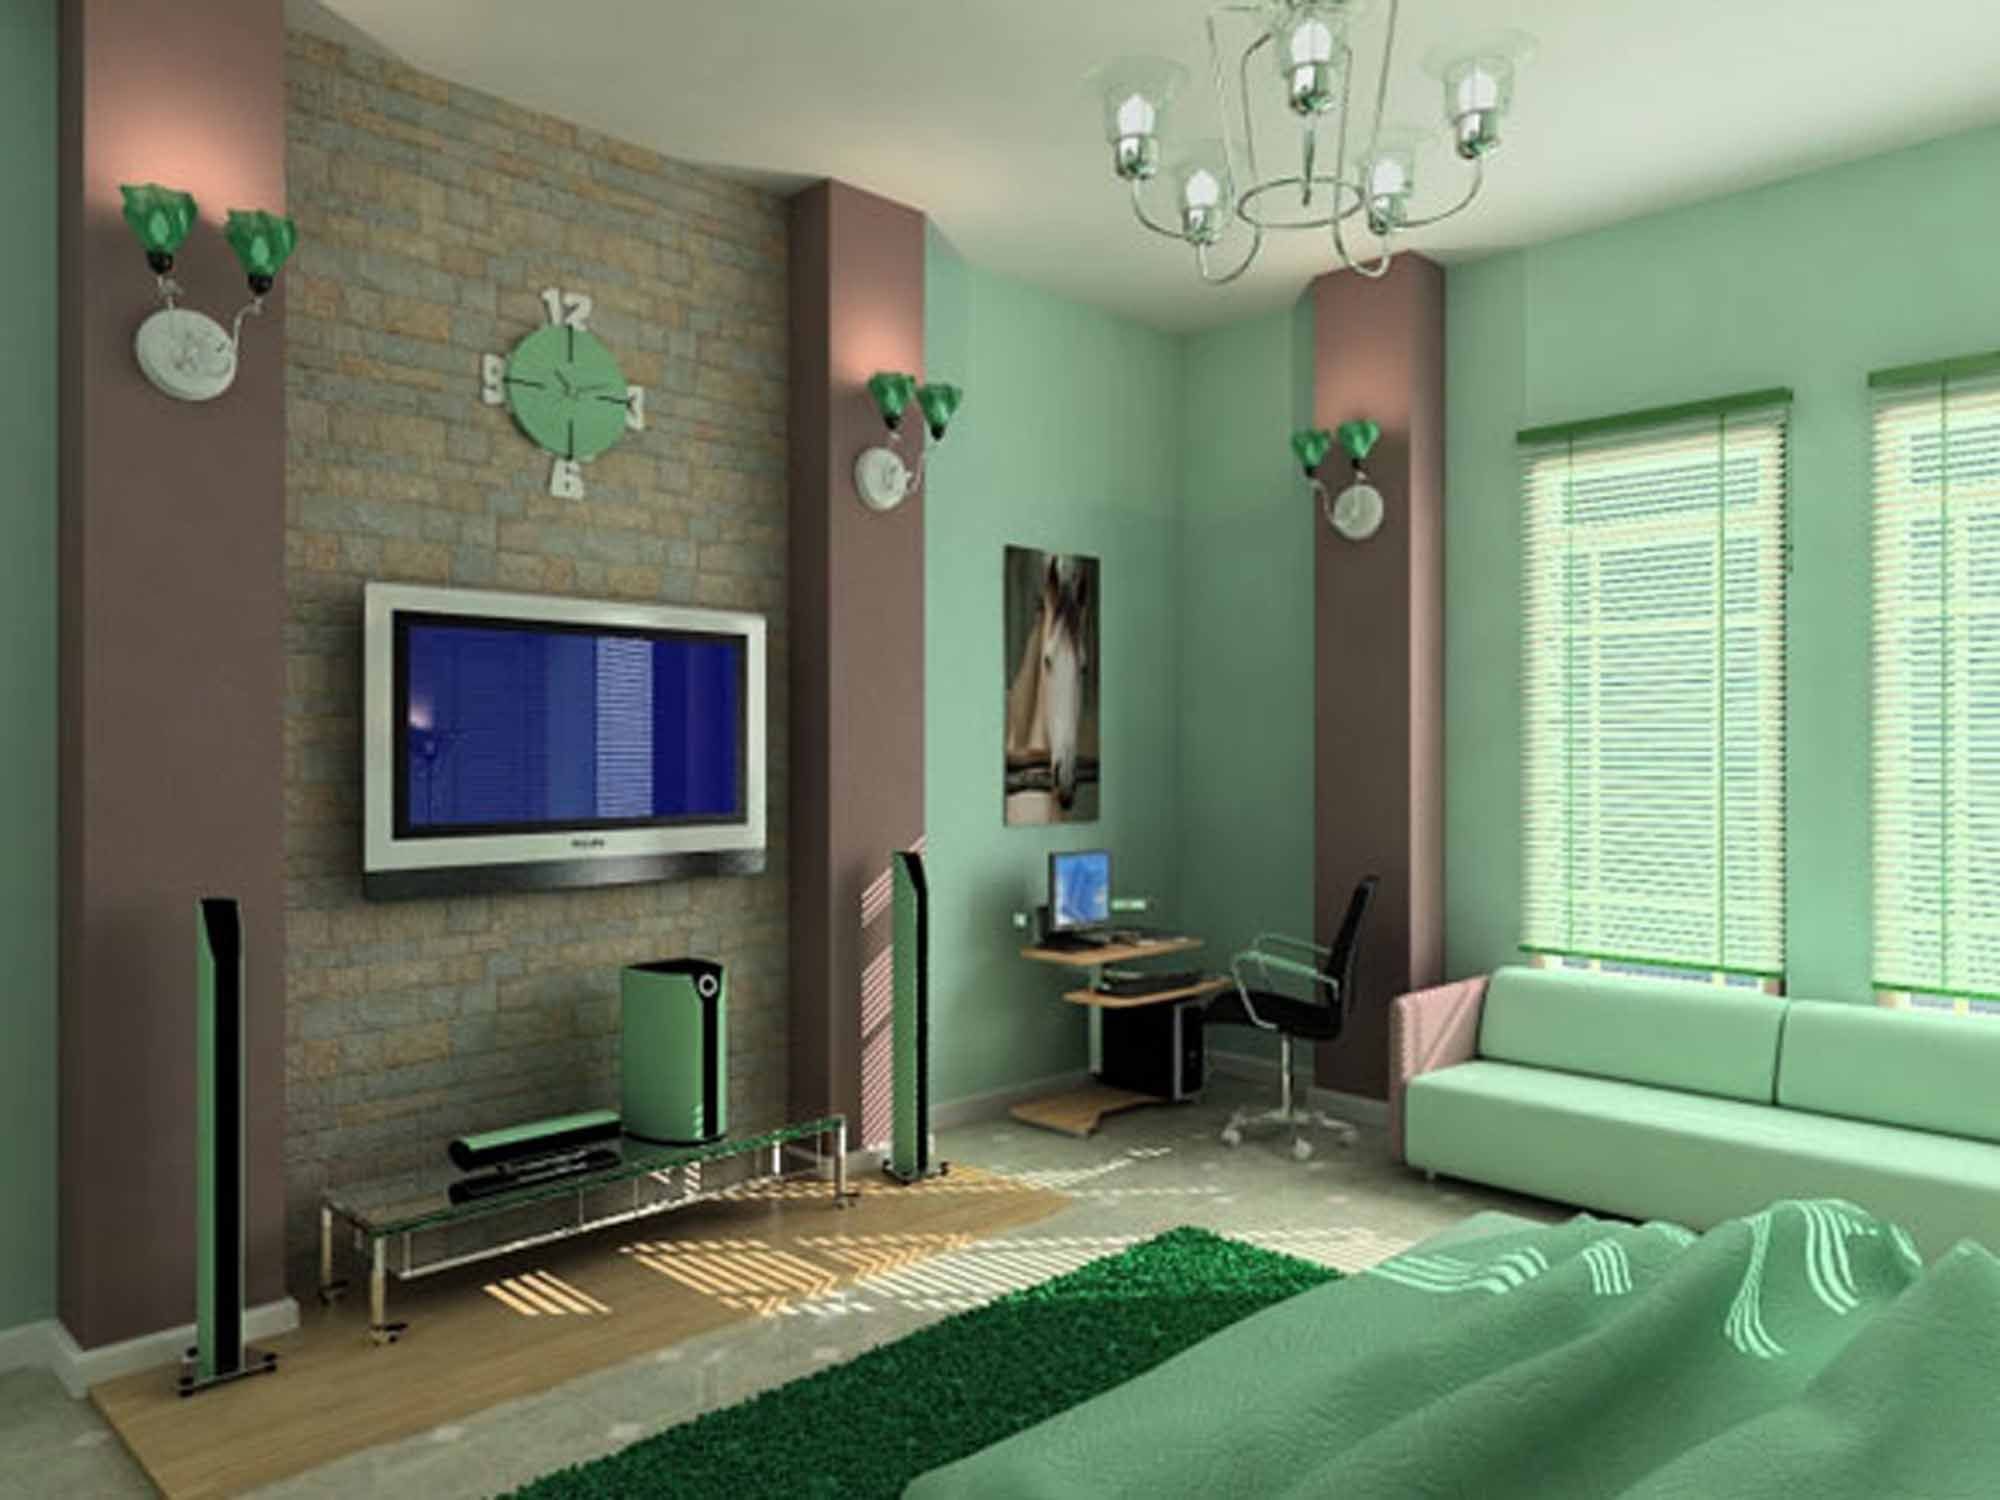 Blue and green bedroom - Green Bedroom Interior Design Green Interior Design Green Interior